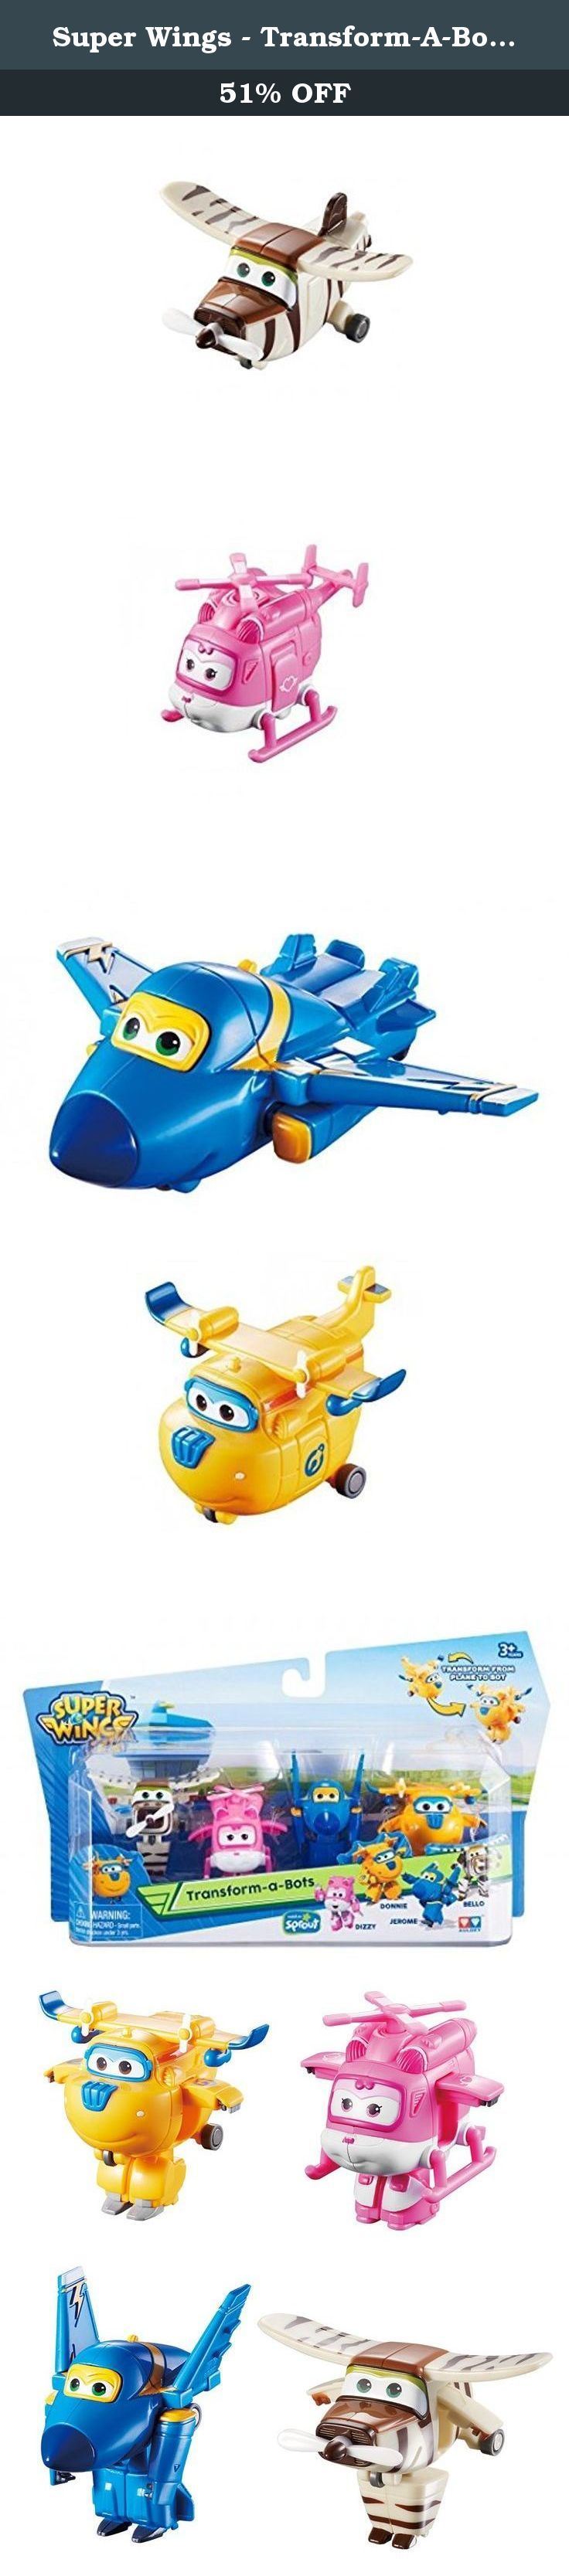 Super Wings - Transform-A-Bots 4 Pack - Donnie, Dizzy, Jerome & Bello. Super Wings - we deliver! Transform these 4 Super Wings mini-figures from planes to robots in 3 easy steps. Each character transforms a little differently, according to their unique form. Transform-a-bots are perfect for reenacting favorite missions from the popular Super Wings TV show. The 4-Pack includes Donnie, Dizzy, Jerome & Bello.